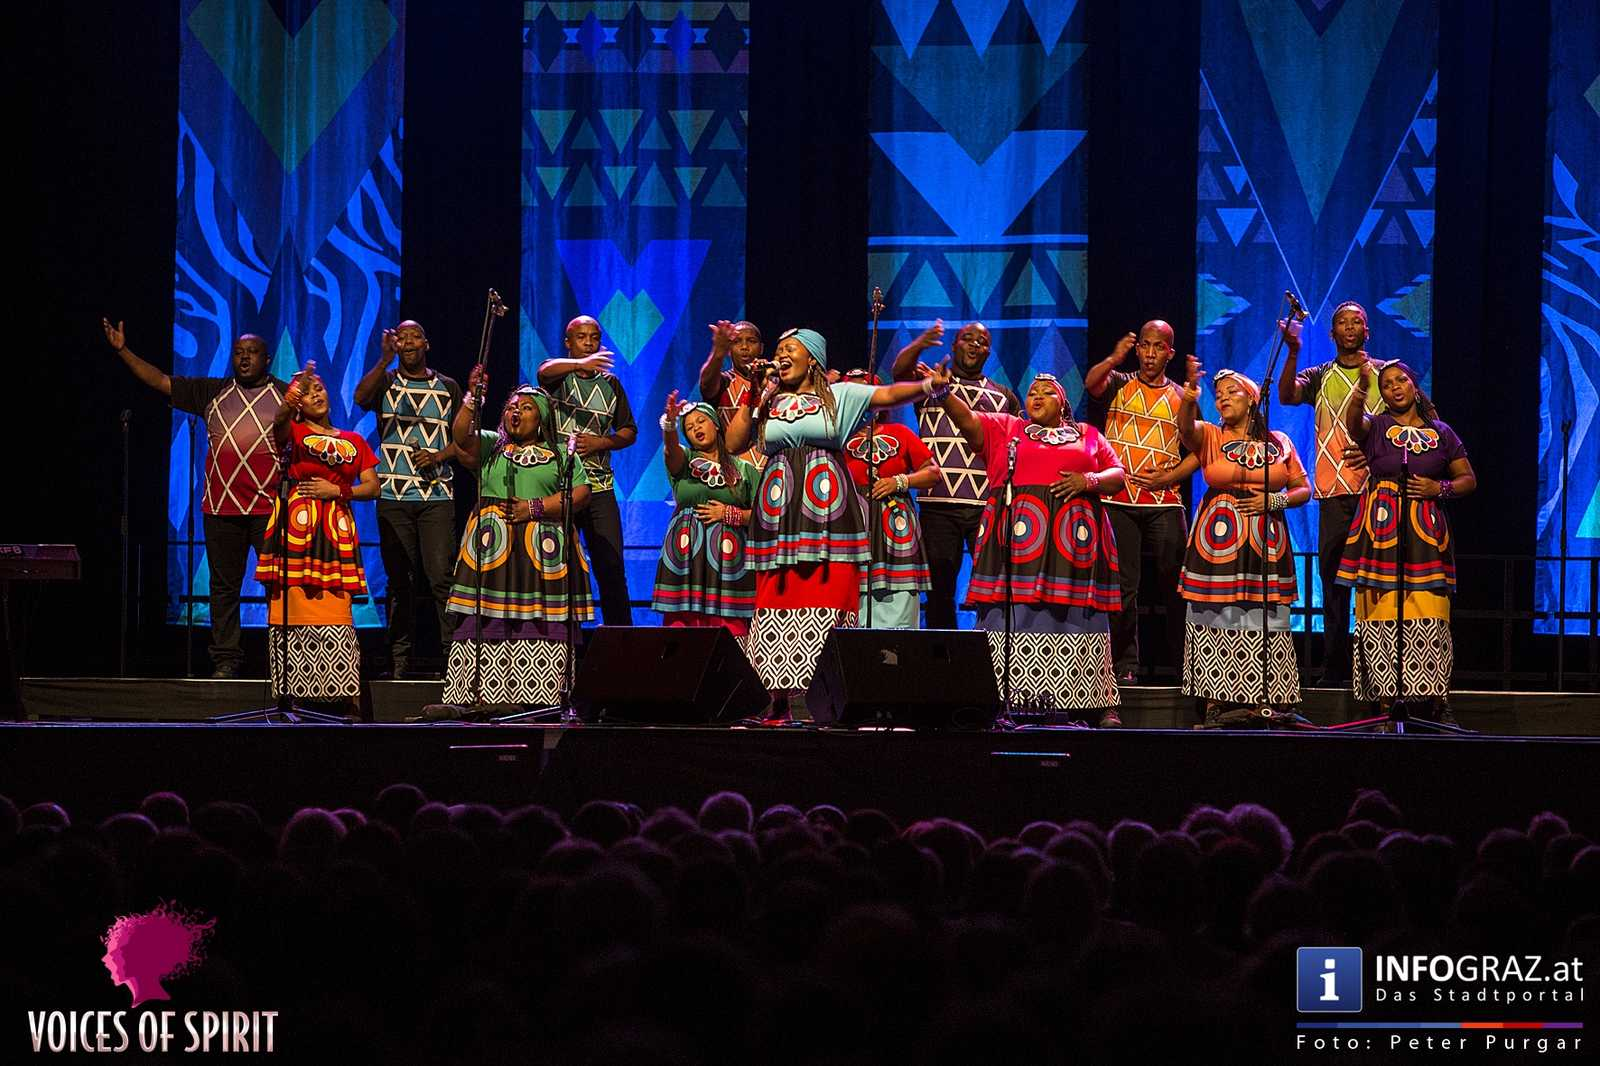 soweto gospel choir internationales chorfestival statdthalle graz voices of spirit eroeffnung festivals 2016 010